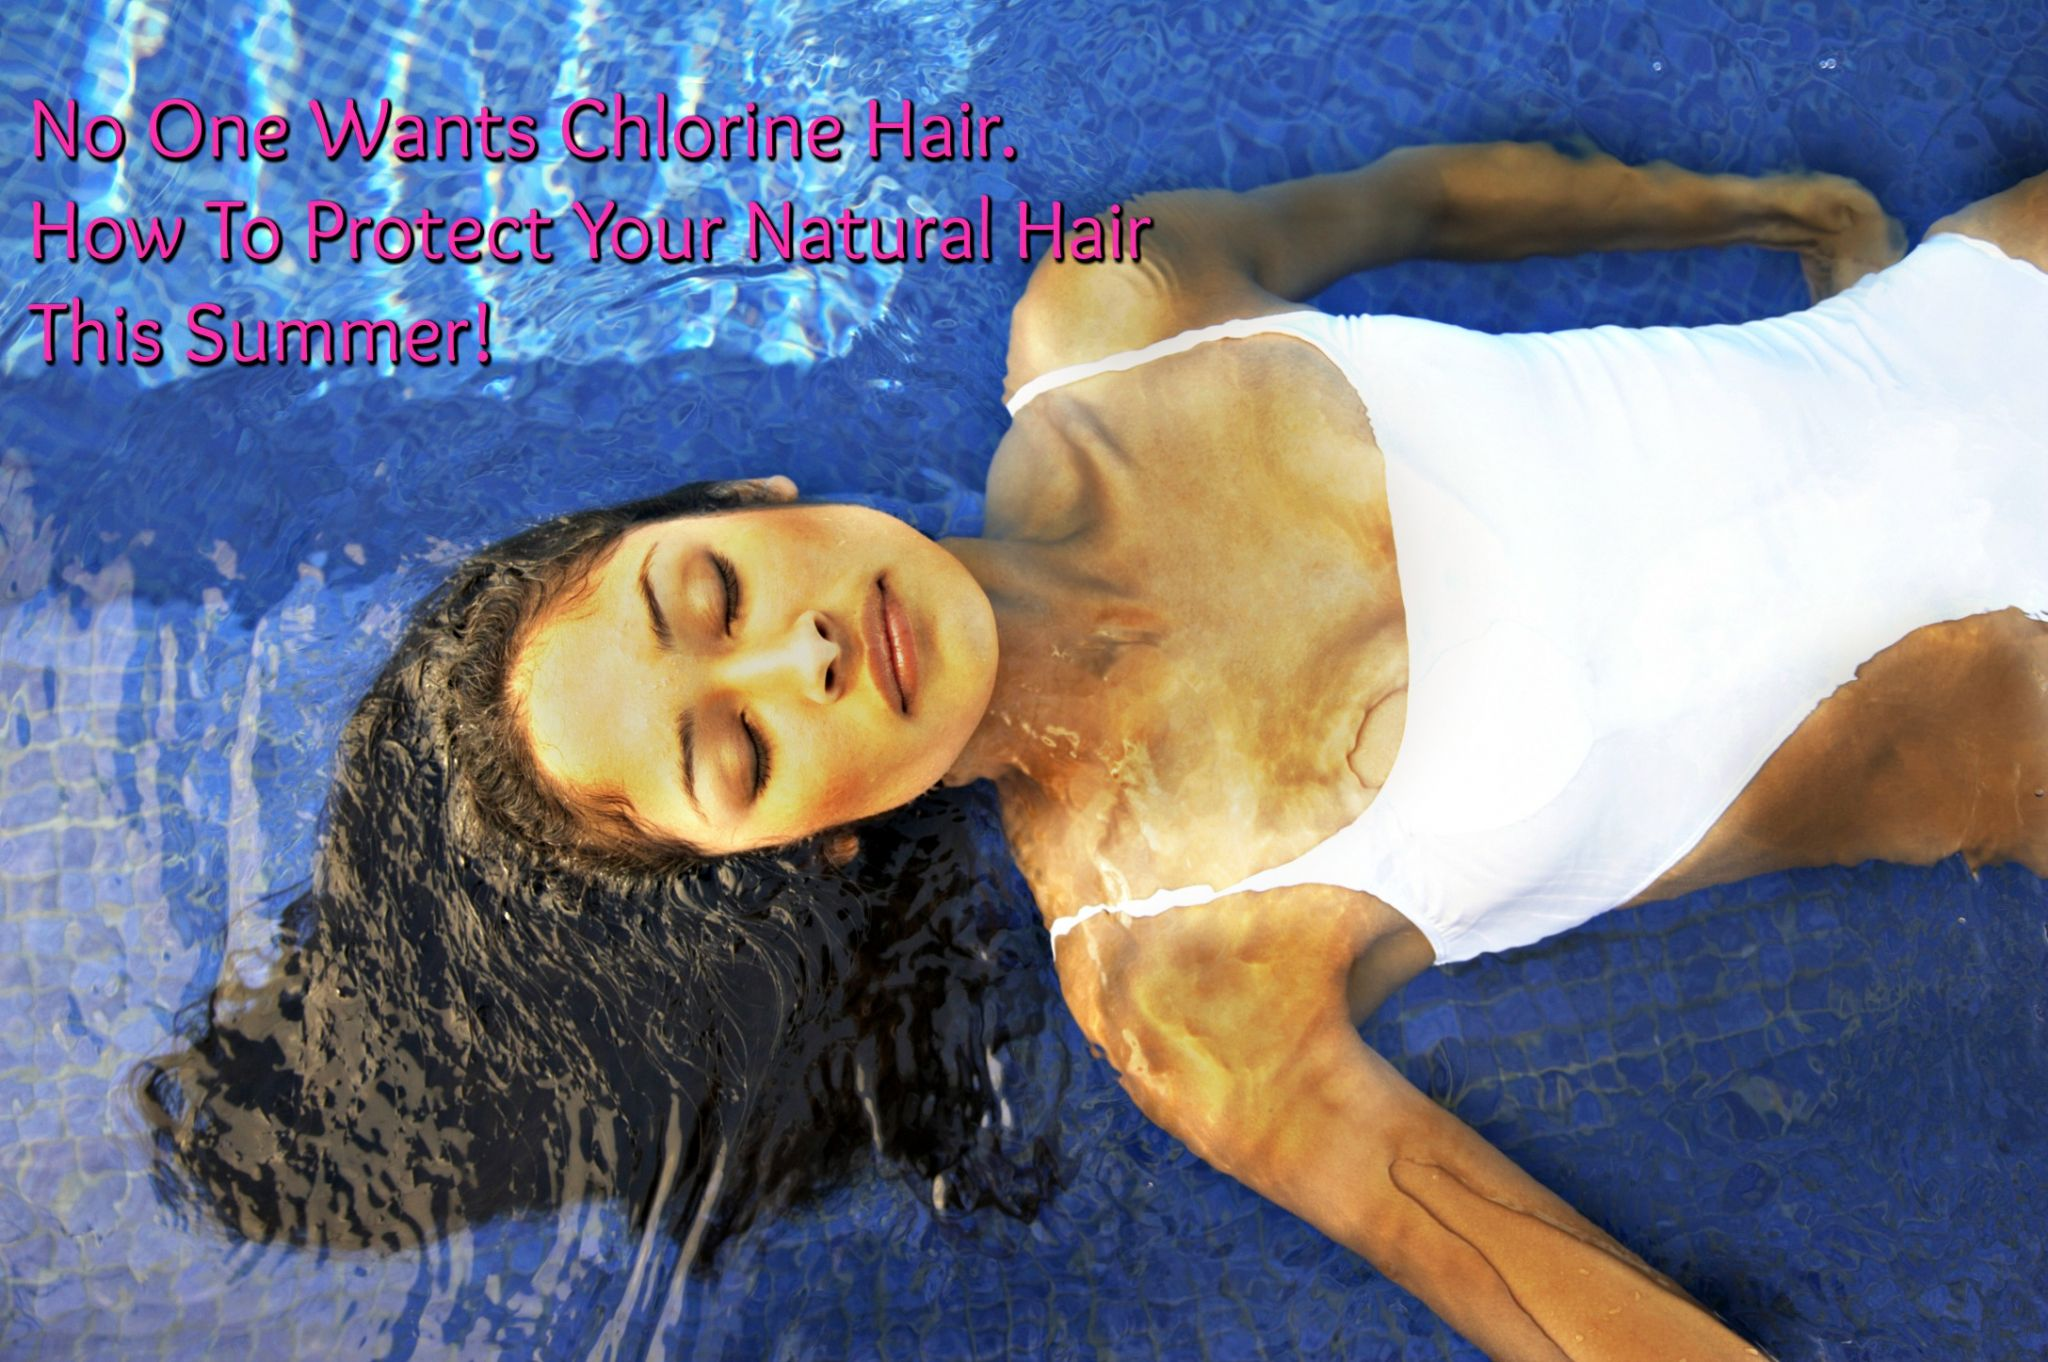 No One Wants Chlorine Hair. How To Protect Your Natural Hair This Summer!